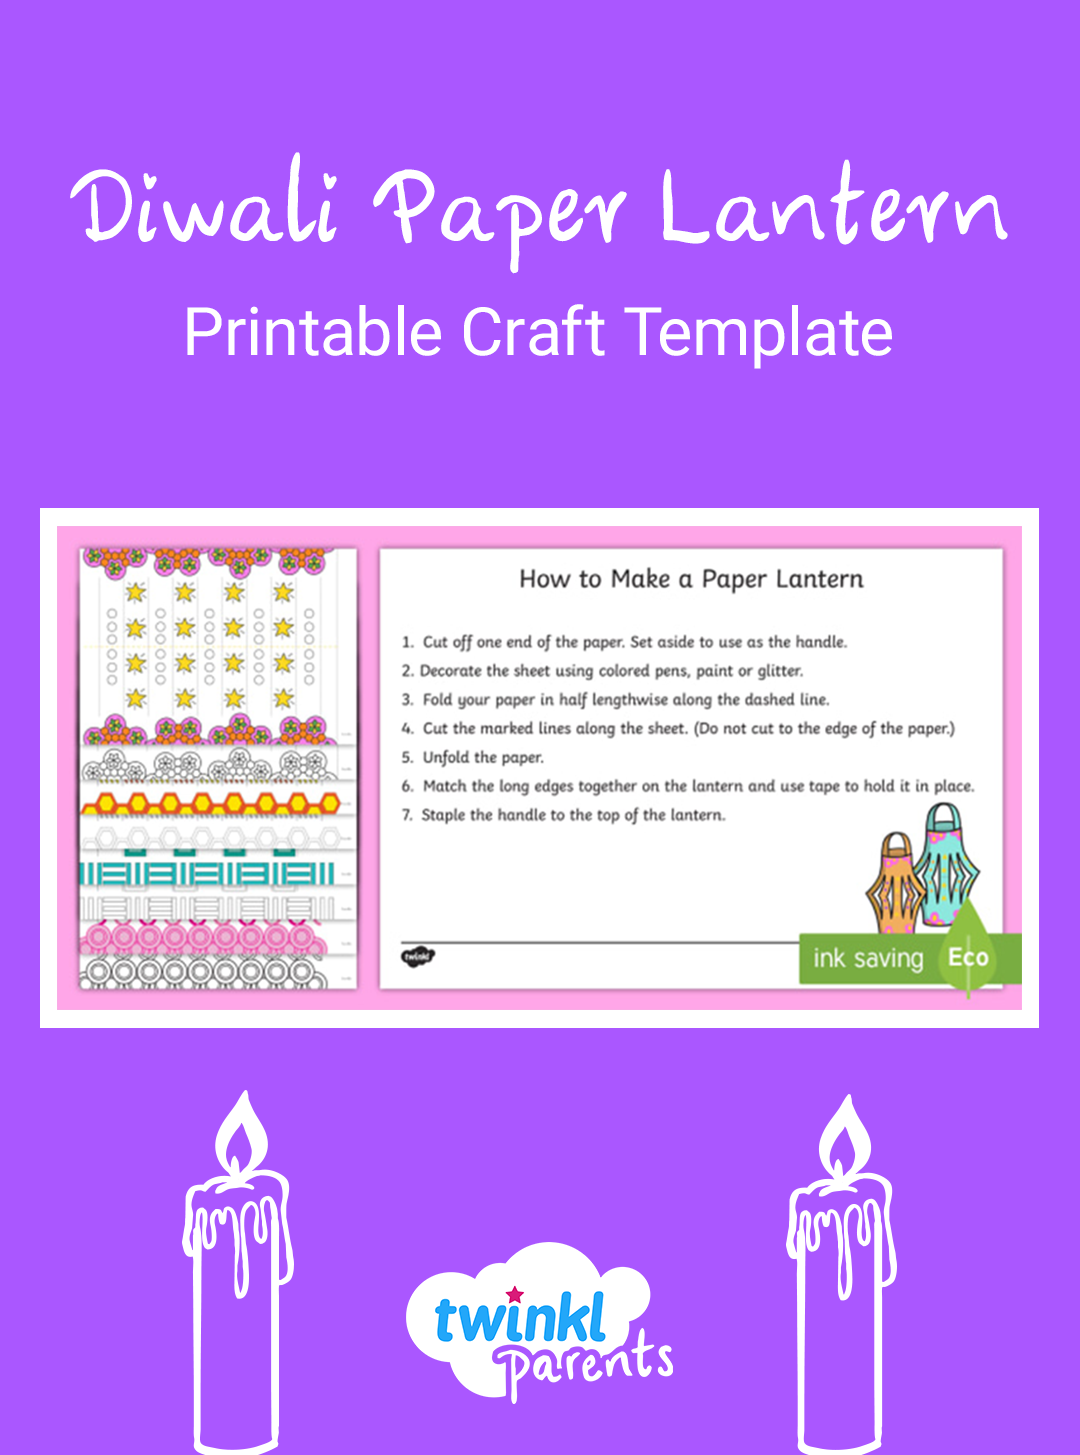 With Colourful Patterns And Easy To Follow Instructions